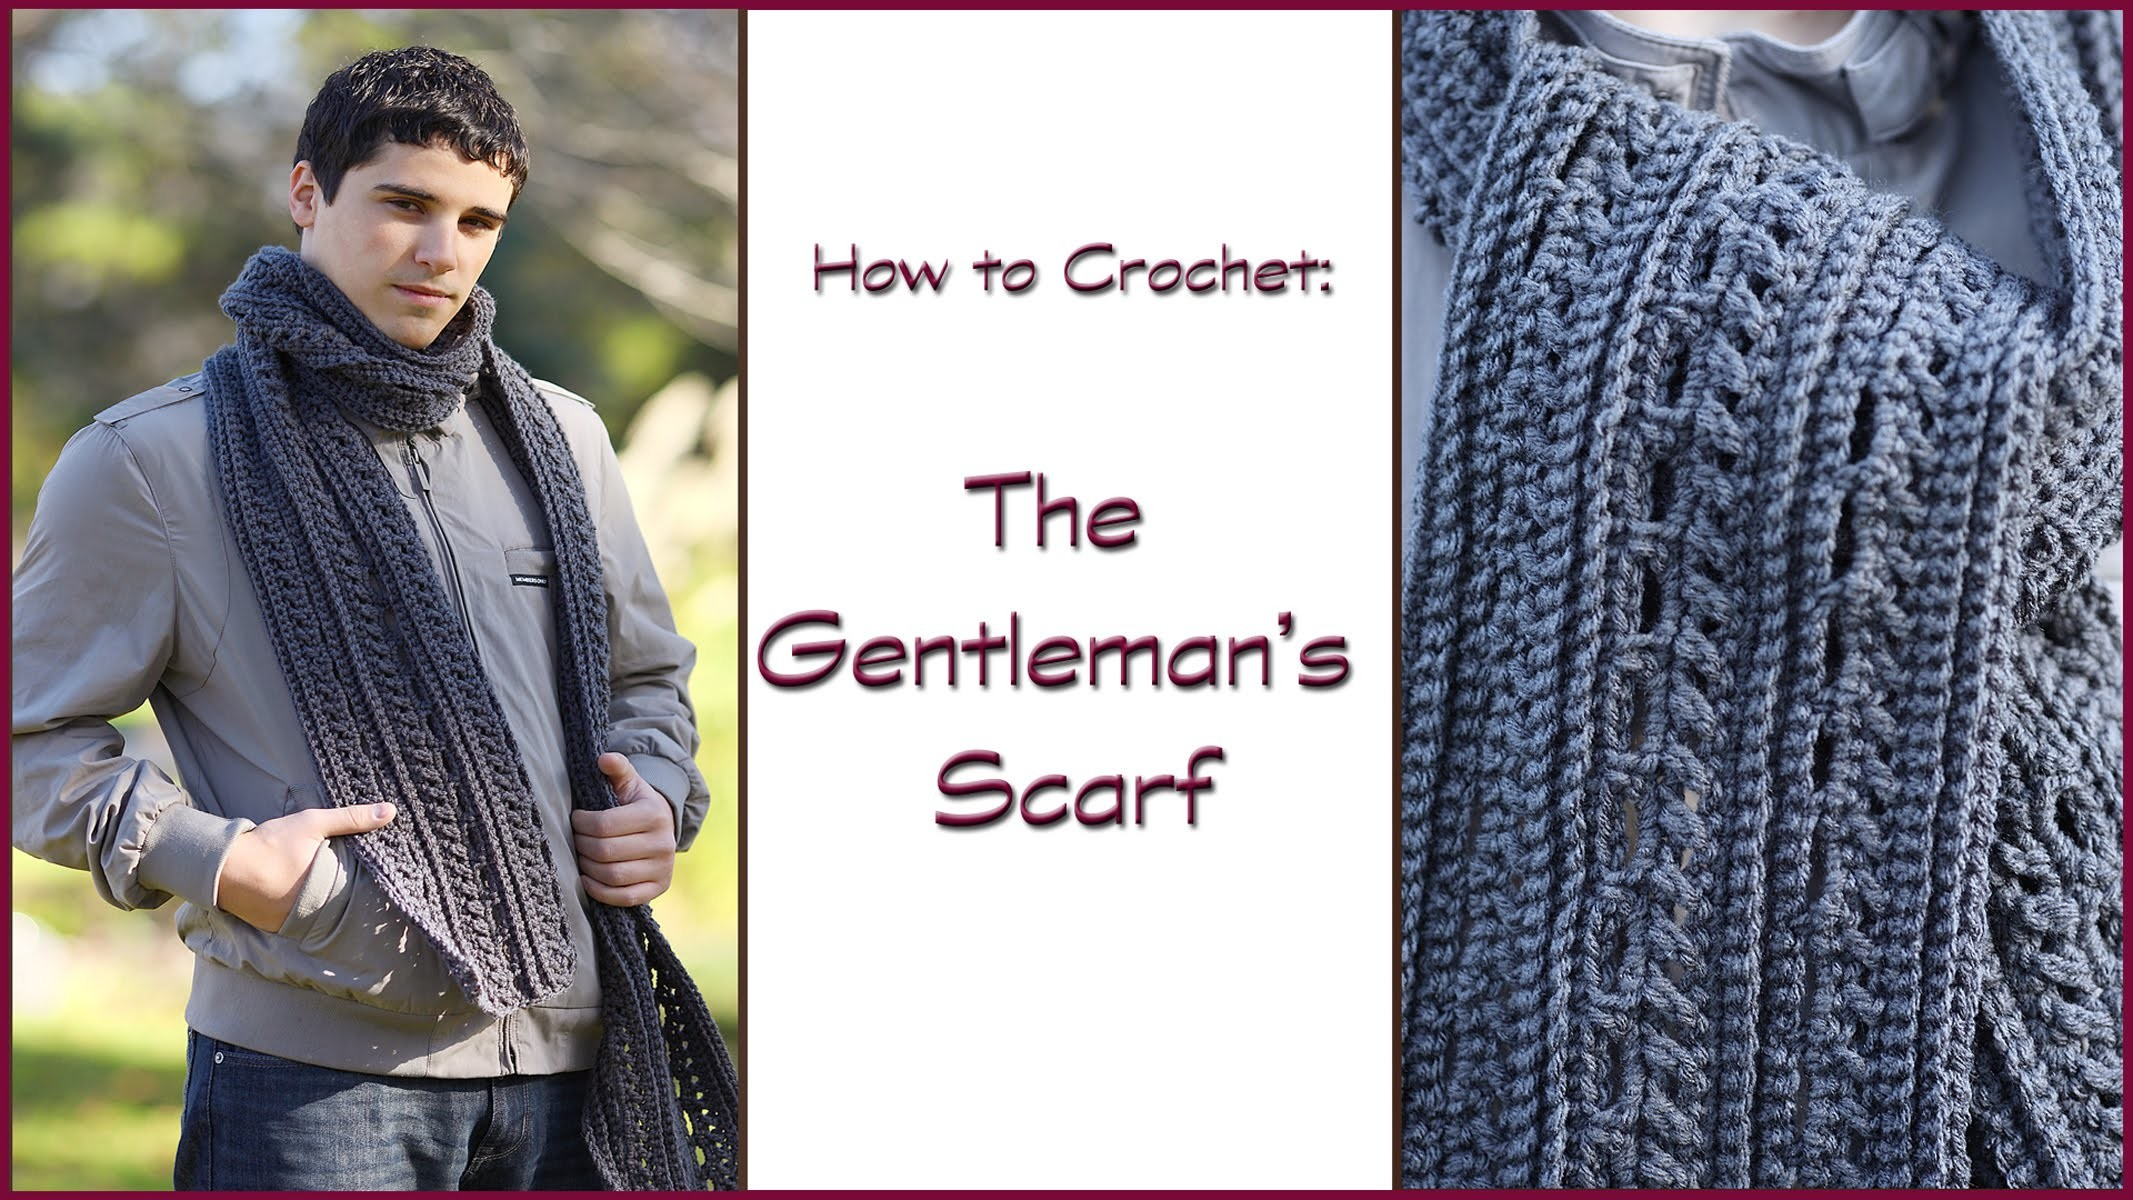 How to Crochet the Gentleman's Scarf